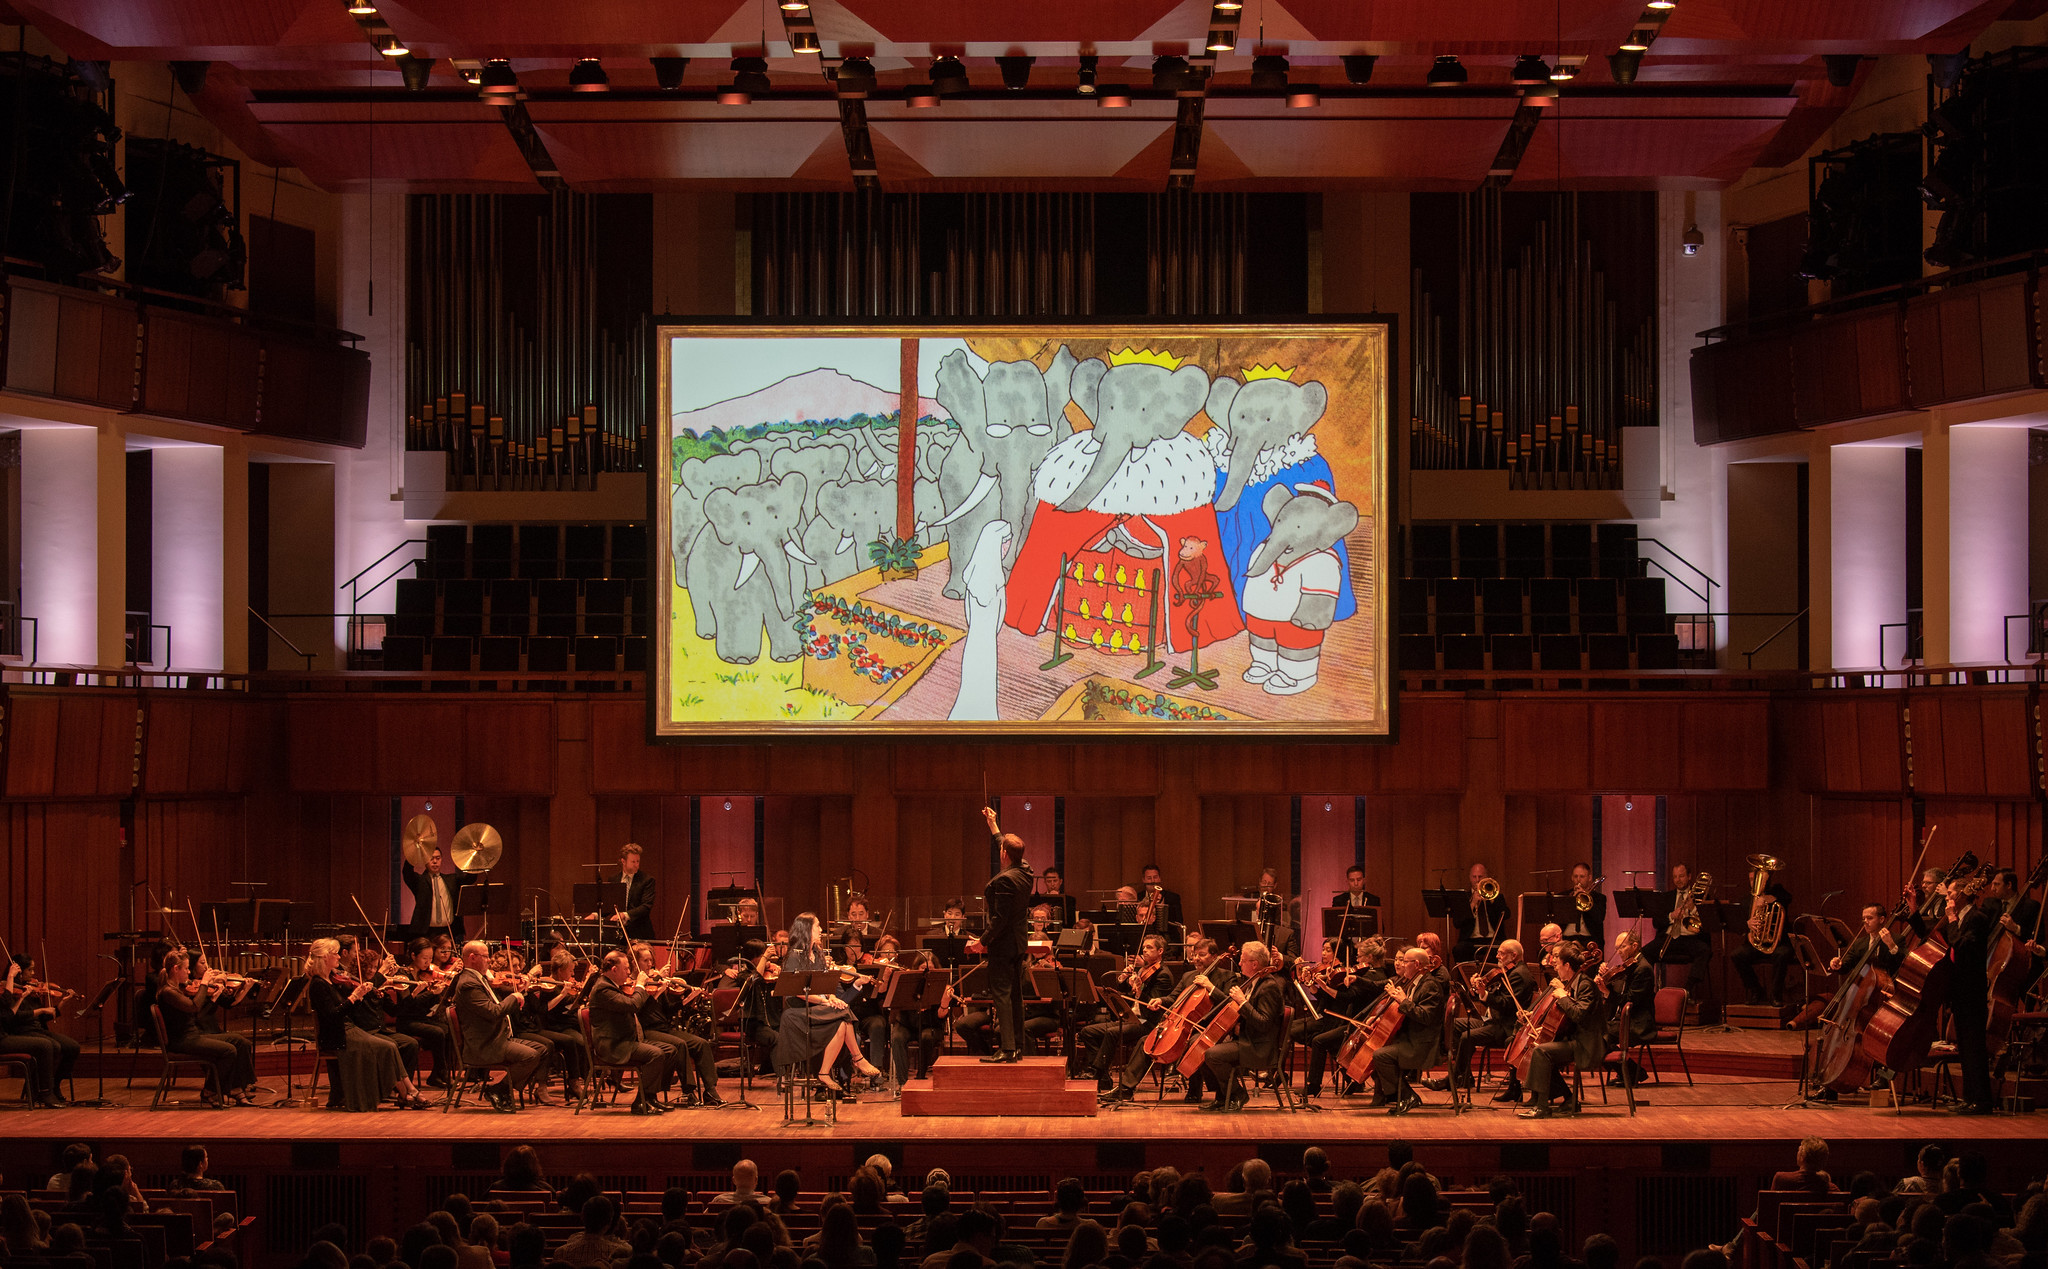 First U.S. performance, Raphael Mostel / Jean de Brunhoff   Babar's Return to the Land of the Elephants   for orchestra,  Royal Ceremony  scene  National Symphony Orchestra, Steven Reineke, conductor, Regina Aquino, narrator, John F Kennedy Center for the Arts, Washington, D.C., April 7, 2019  Photo: Erica Bruce, for Mostel.com (full size photo available). Used with permissions